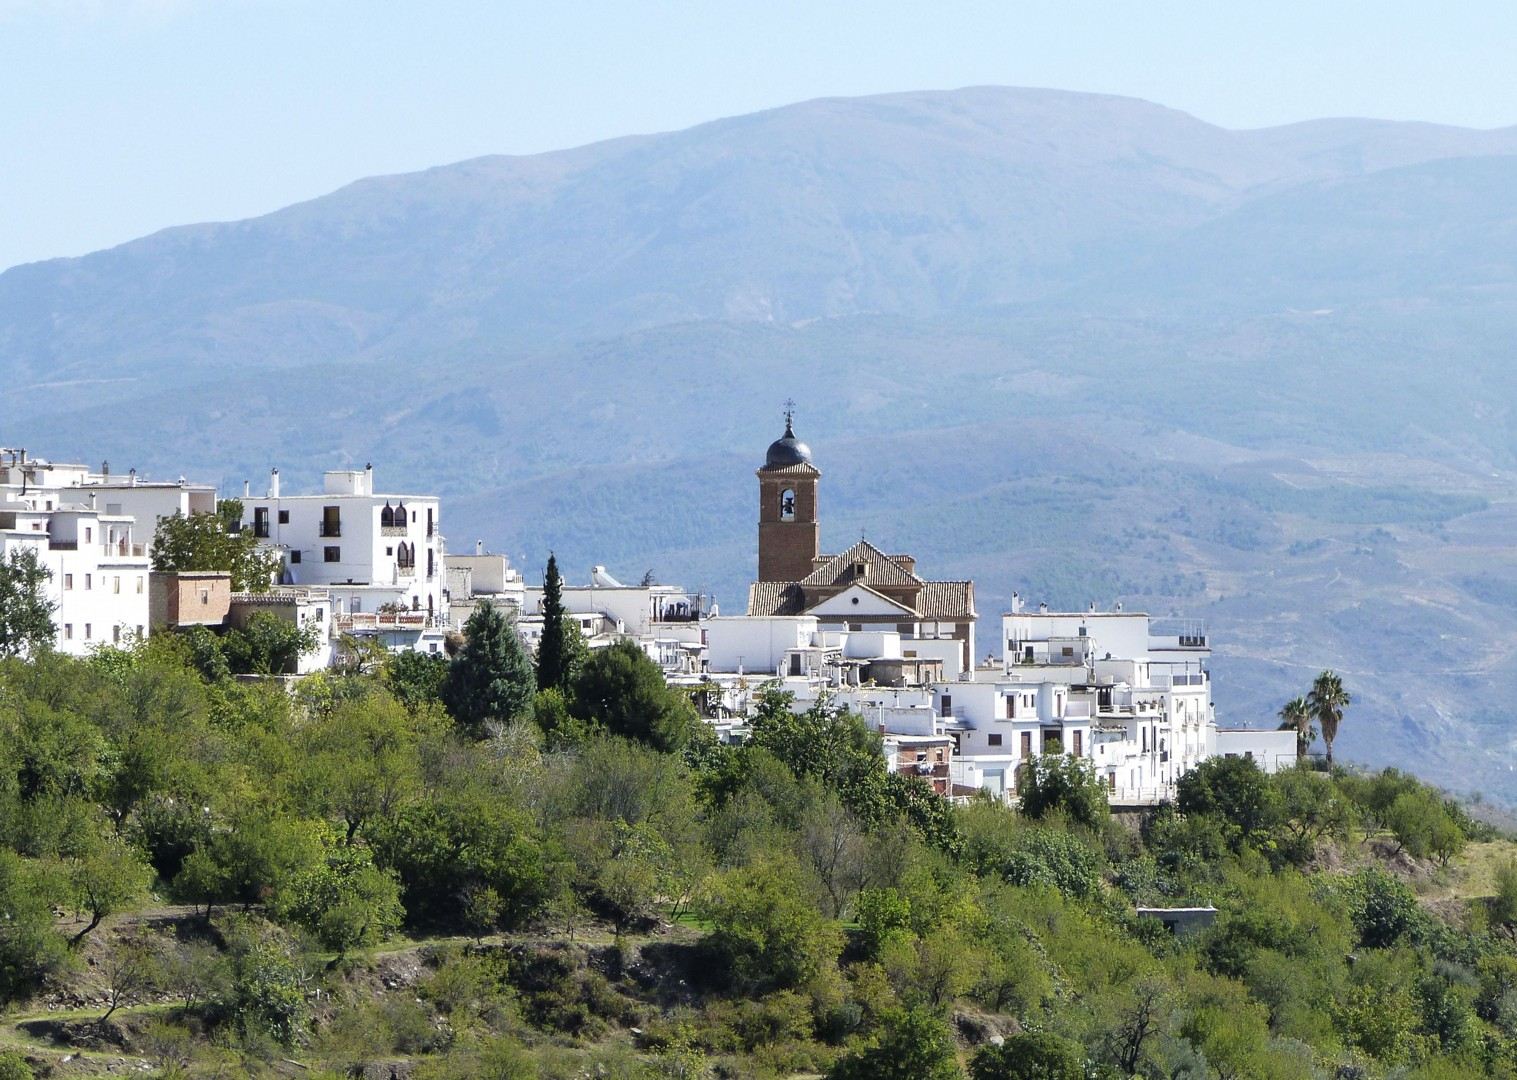 _Holiday.767.13304.jpg - Southern Spain - Andalucia - Los Pueblos Blancos - Guided Road Cycling Holiday - Road Cycling